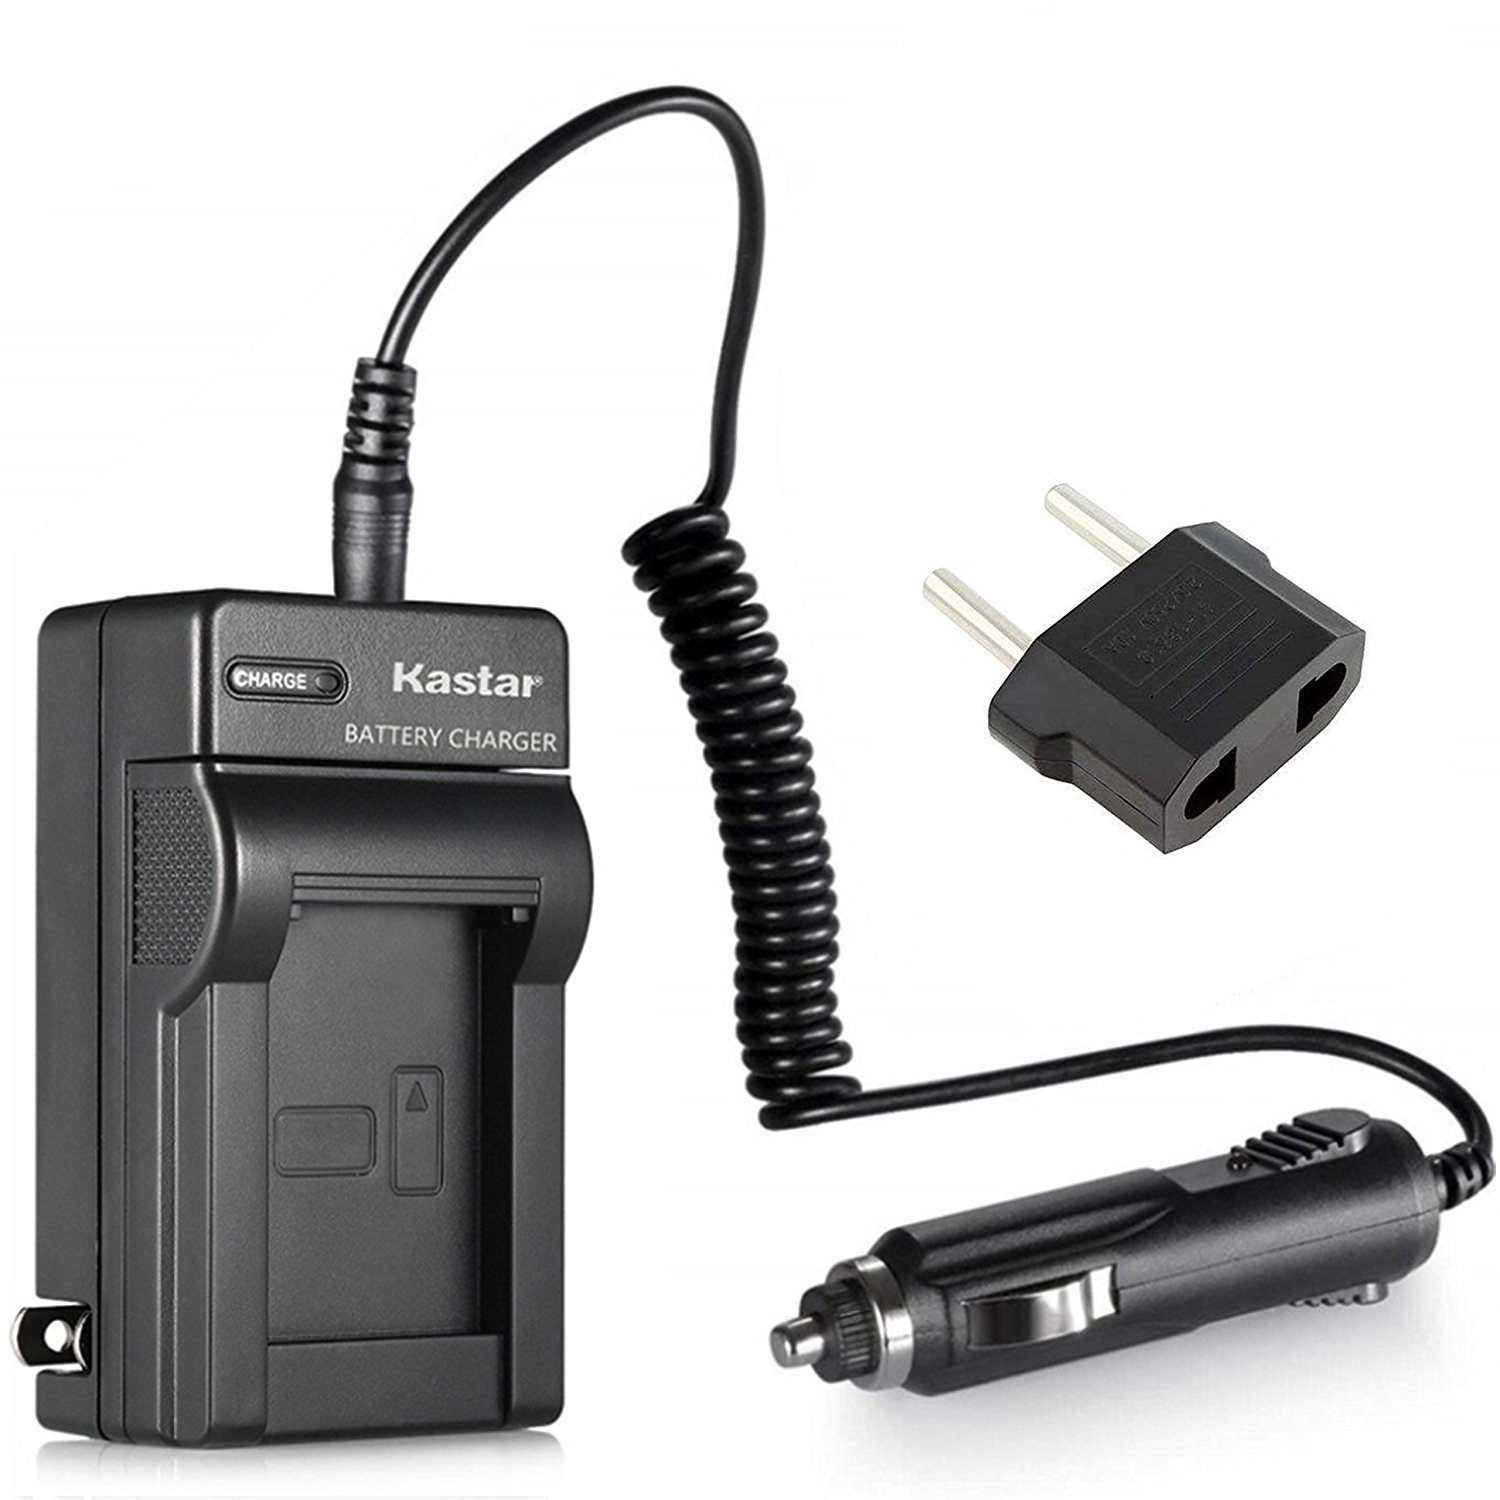 Kastar Compact Battery Charger Set for Sony NP-FM50 NP-FM55H NP-FM30 NP-FM70 NP-FM90 NP-QM51 NP-QM71D NP-QM91D NP-FM500H NP-F330 NP-F550 NP-F570 ...